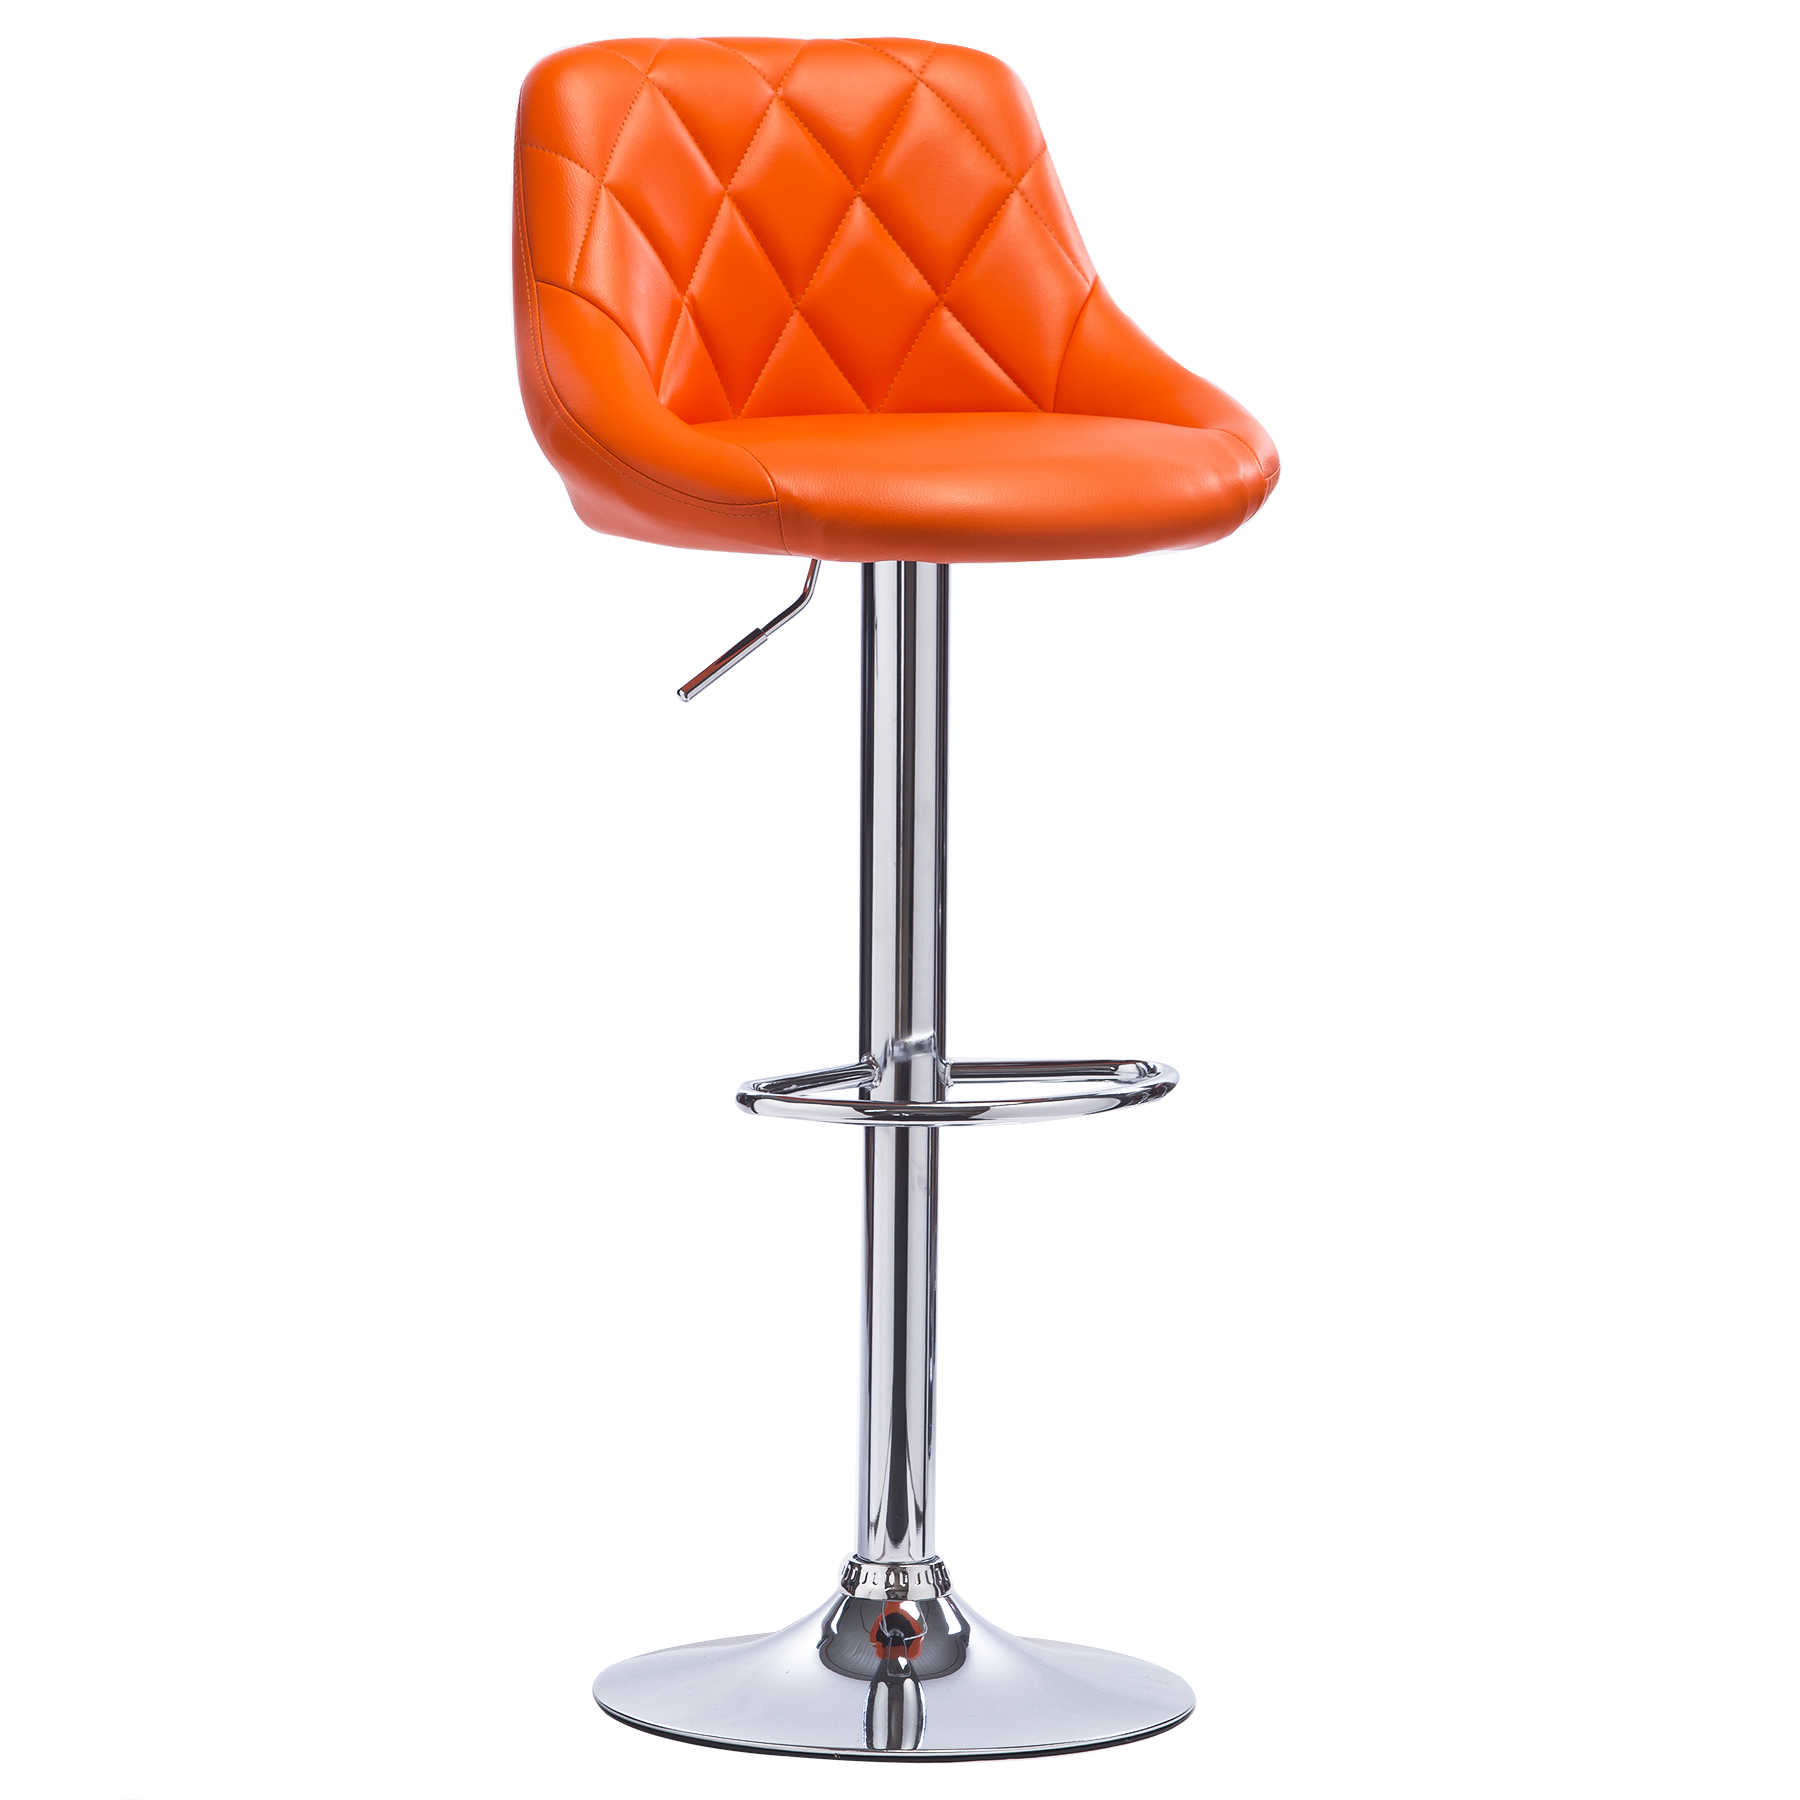 1 pcs bar stools swivel kitchen breakfast stool chair for Kitchen swivel bar stools